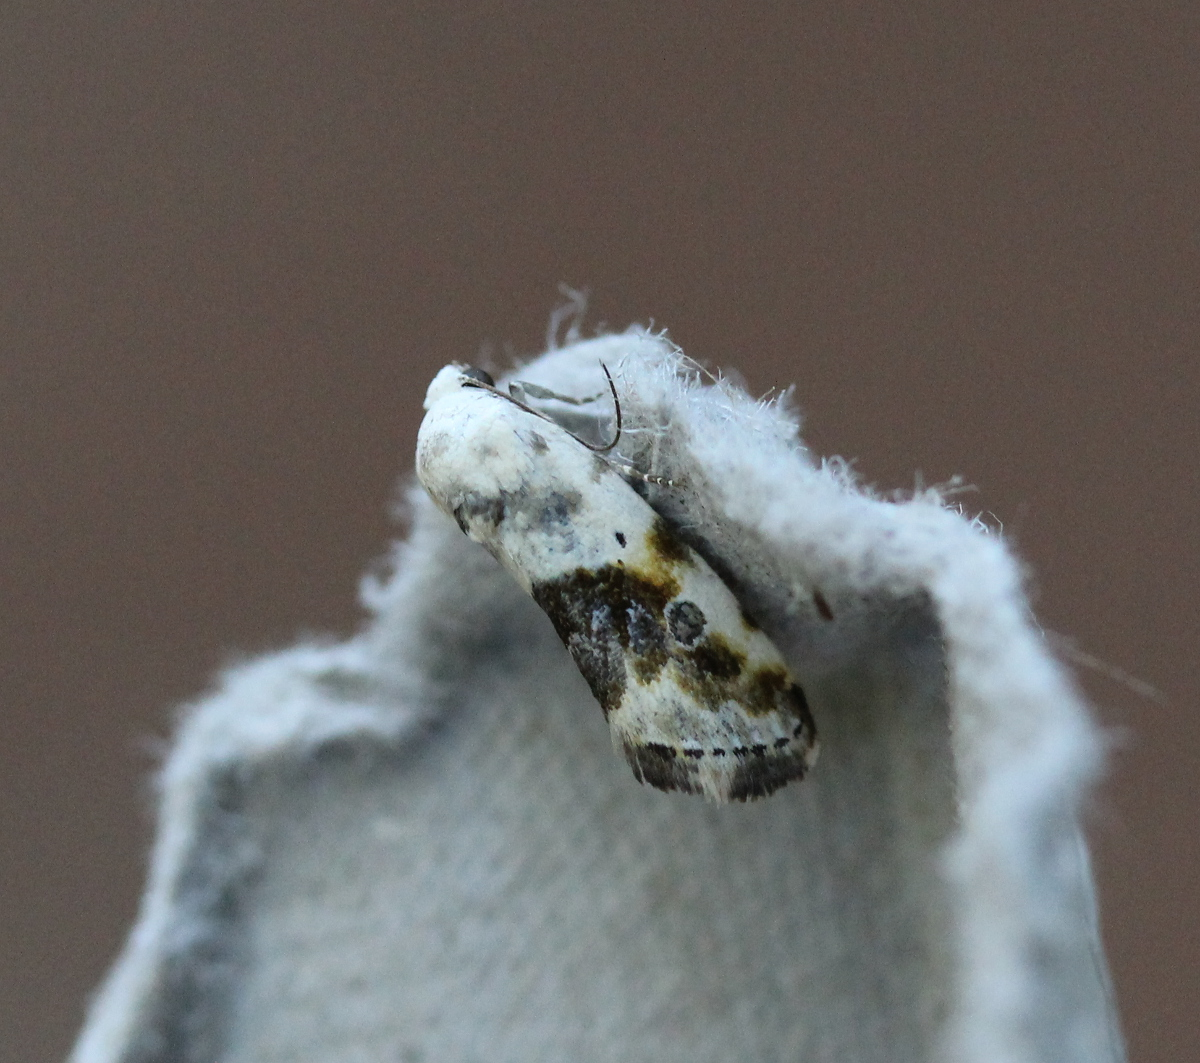 small moth, photographed on egg carton